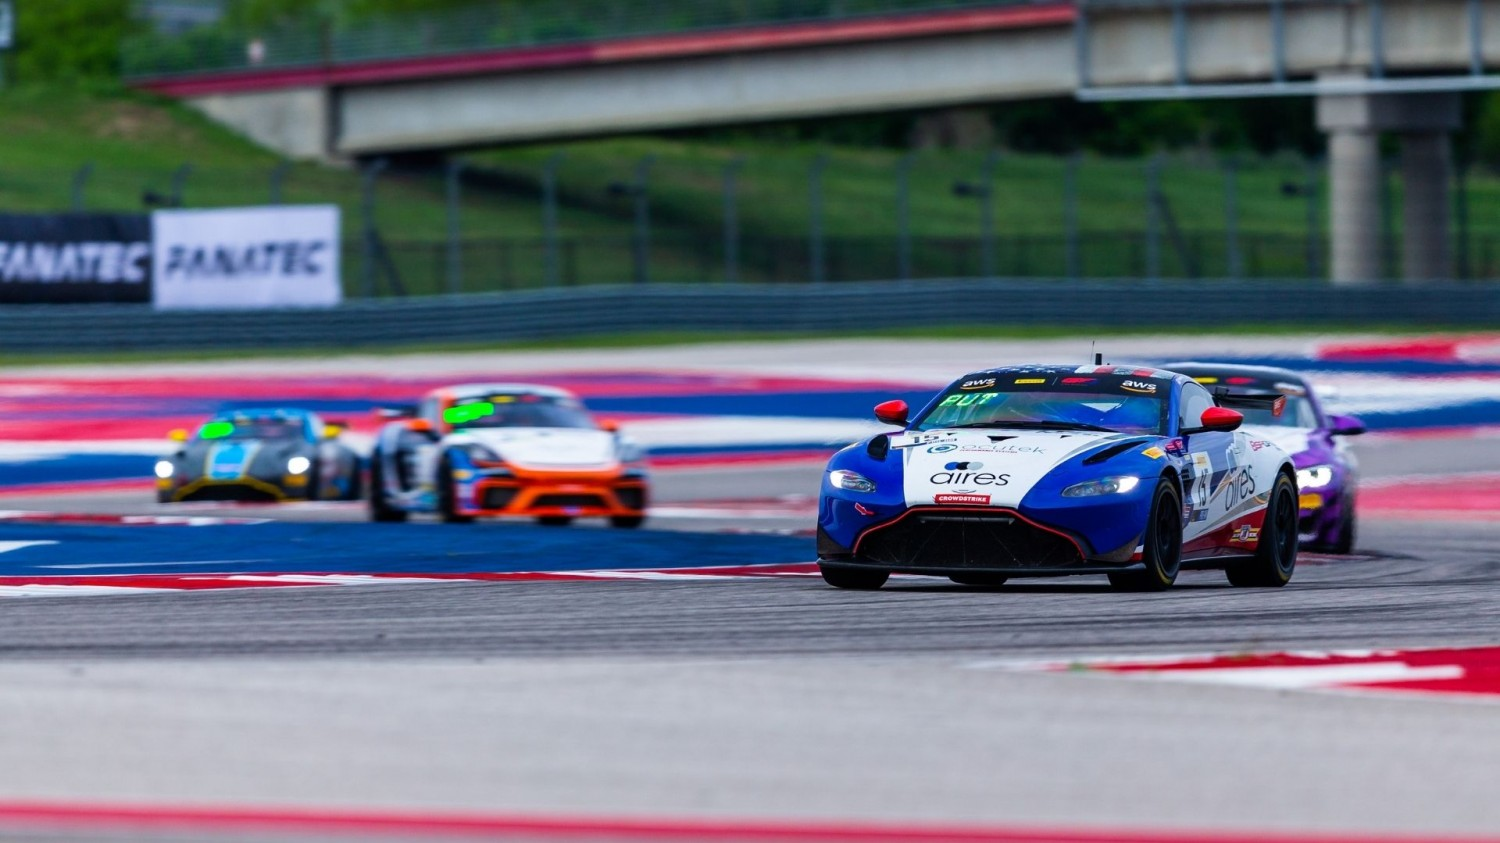 BSport Aston Martin leads final practice session from rainy Texas